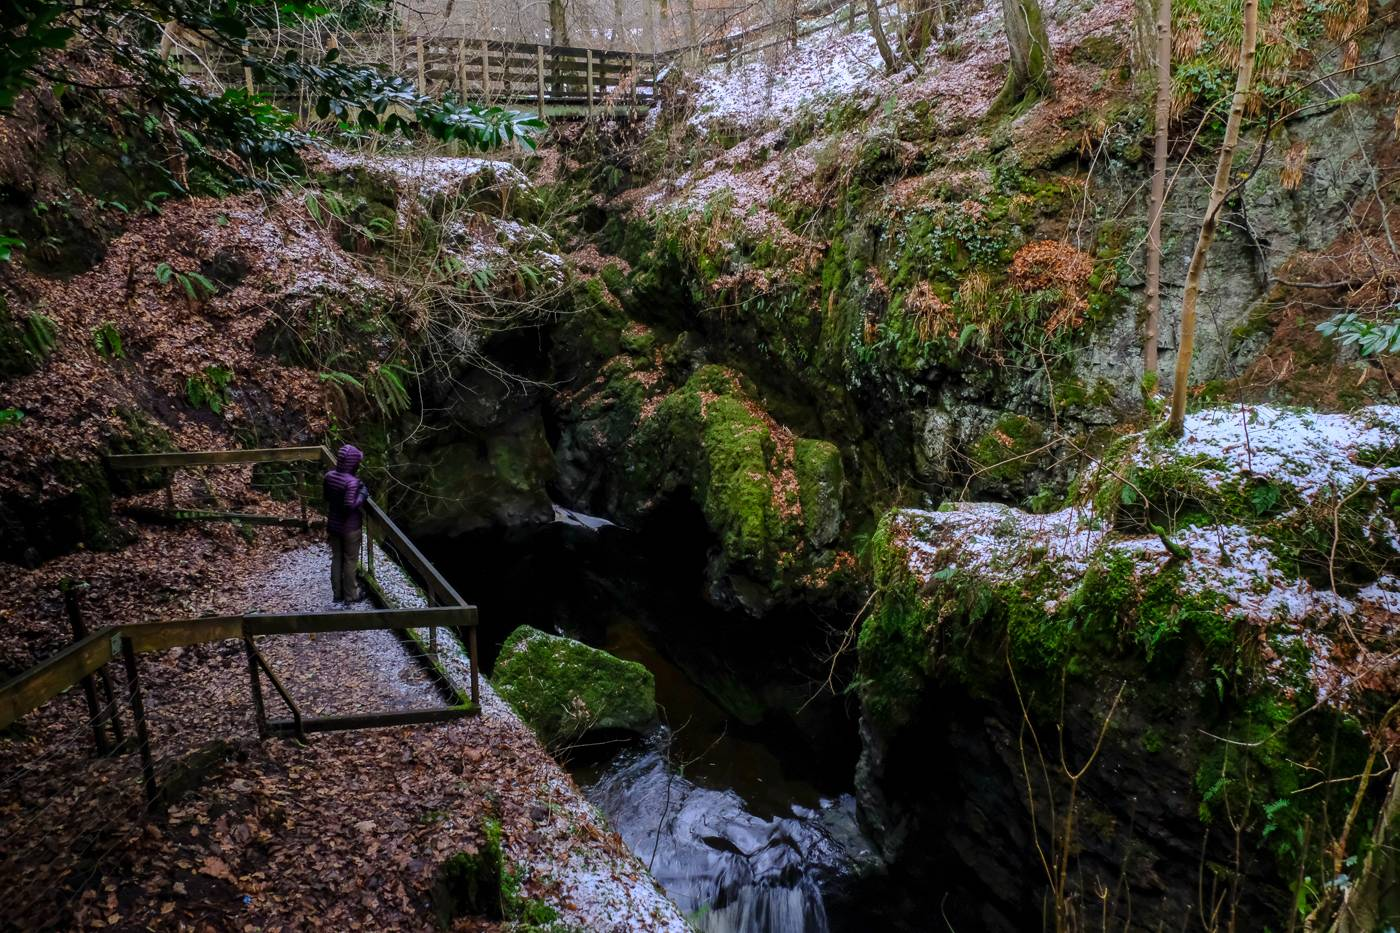 Rumbling Bridge Gorge and Crook of Devon (Walkhighlands)